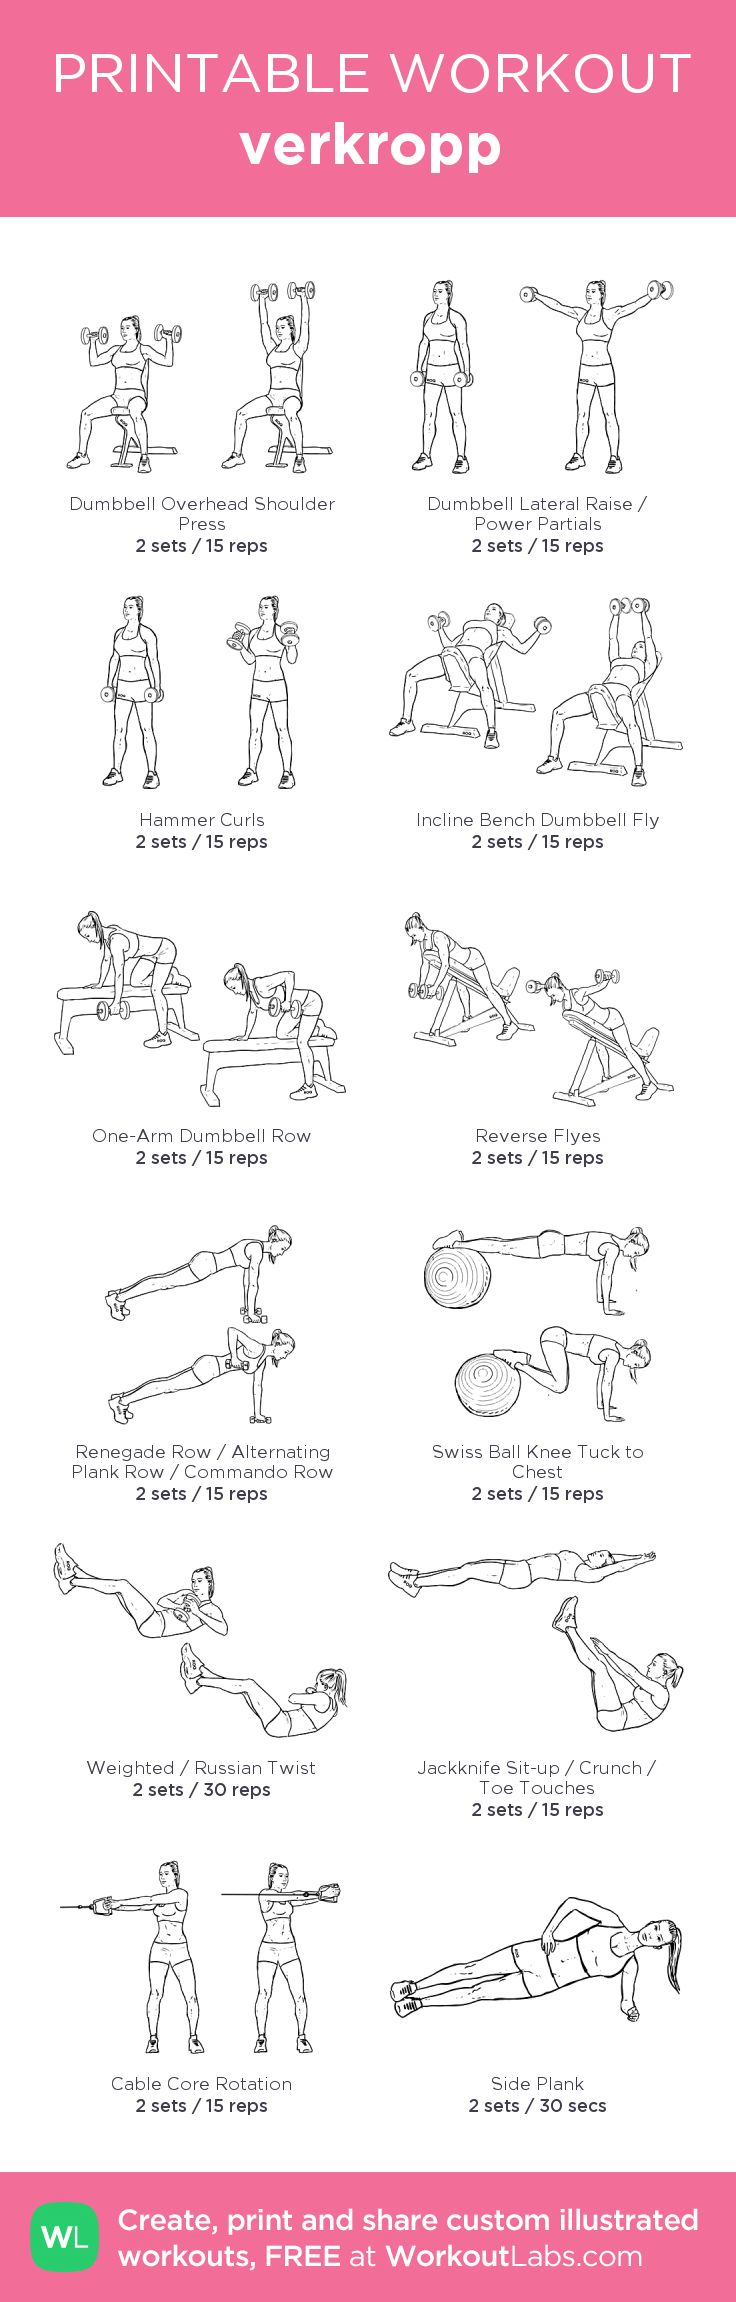 Överkropp: my visual workout created at WorkoutLabs.com • Click through to customize and download as a FREE PDF! #customworkout